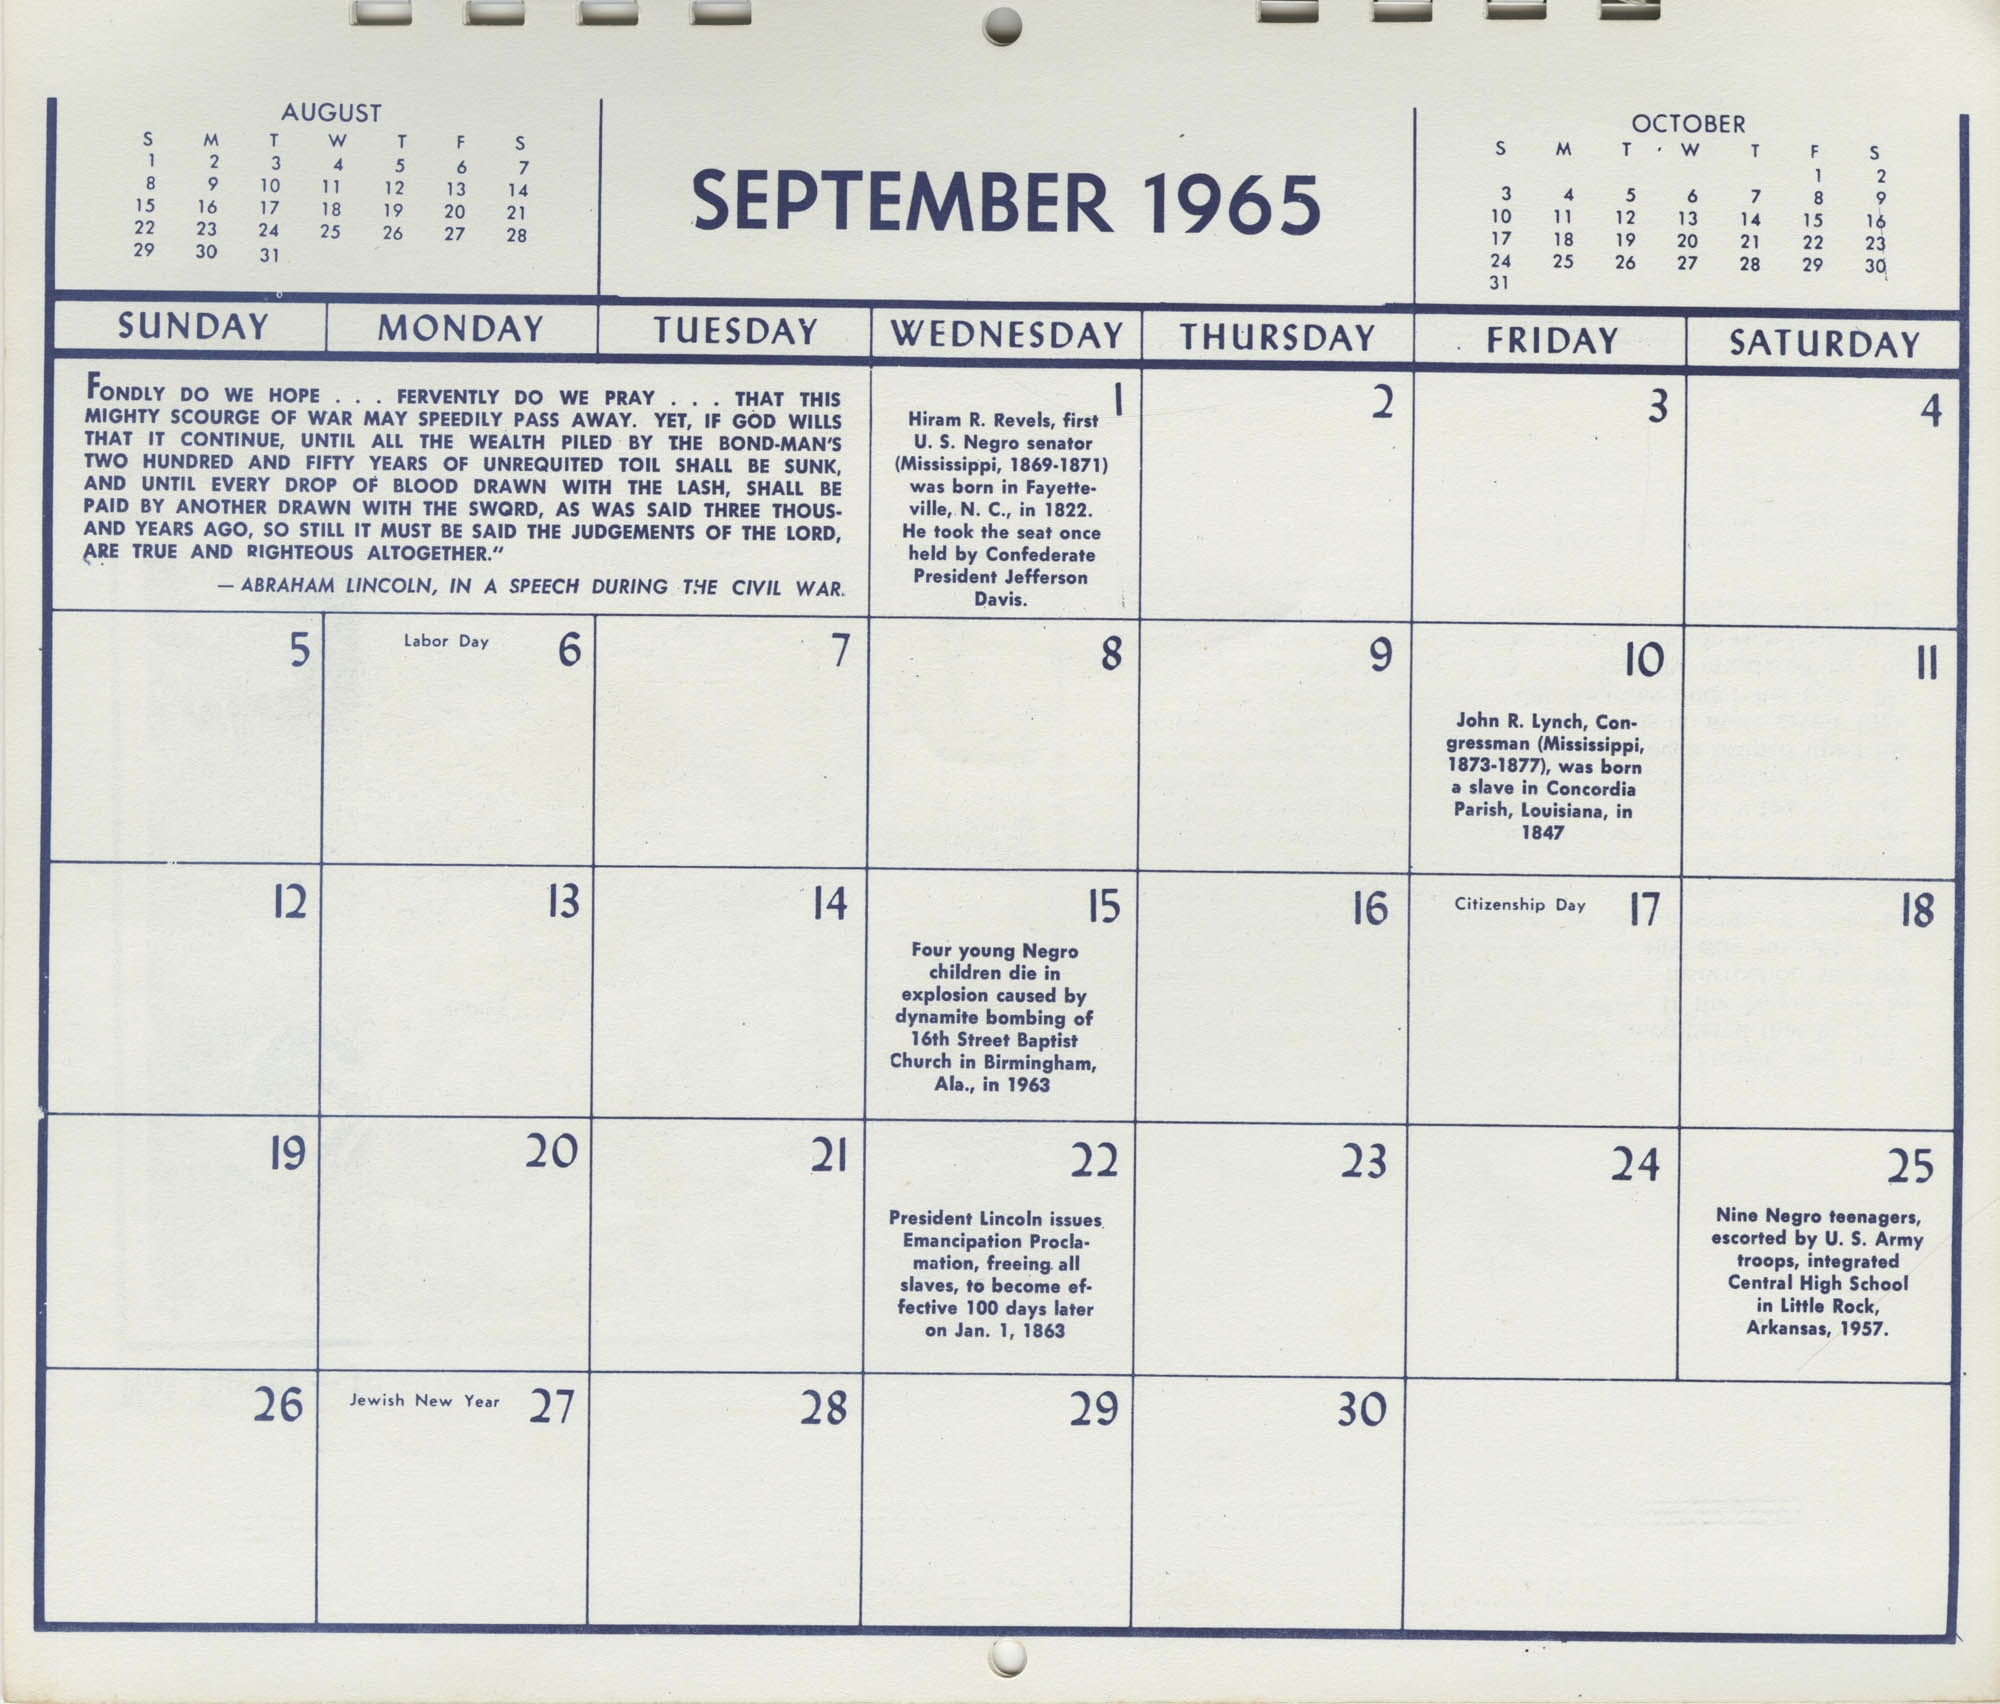 Southern Christian Leadership Conference Newsletter Calendar, September 1965, Bottom